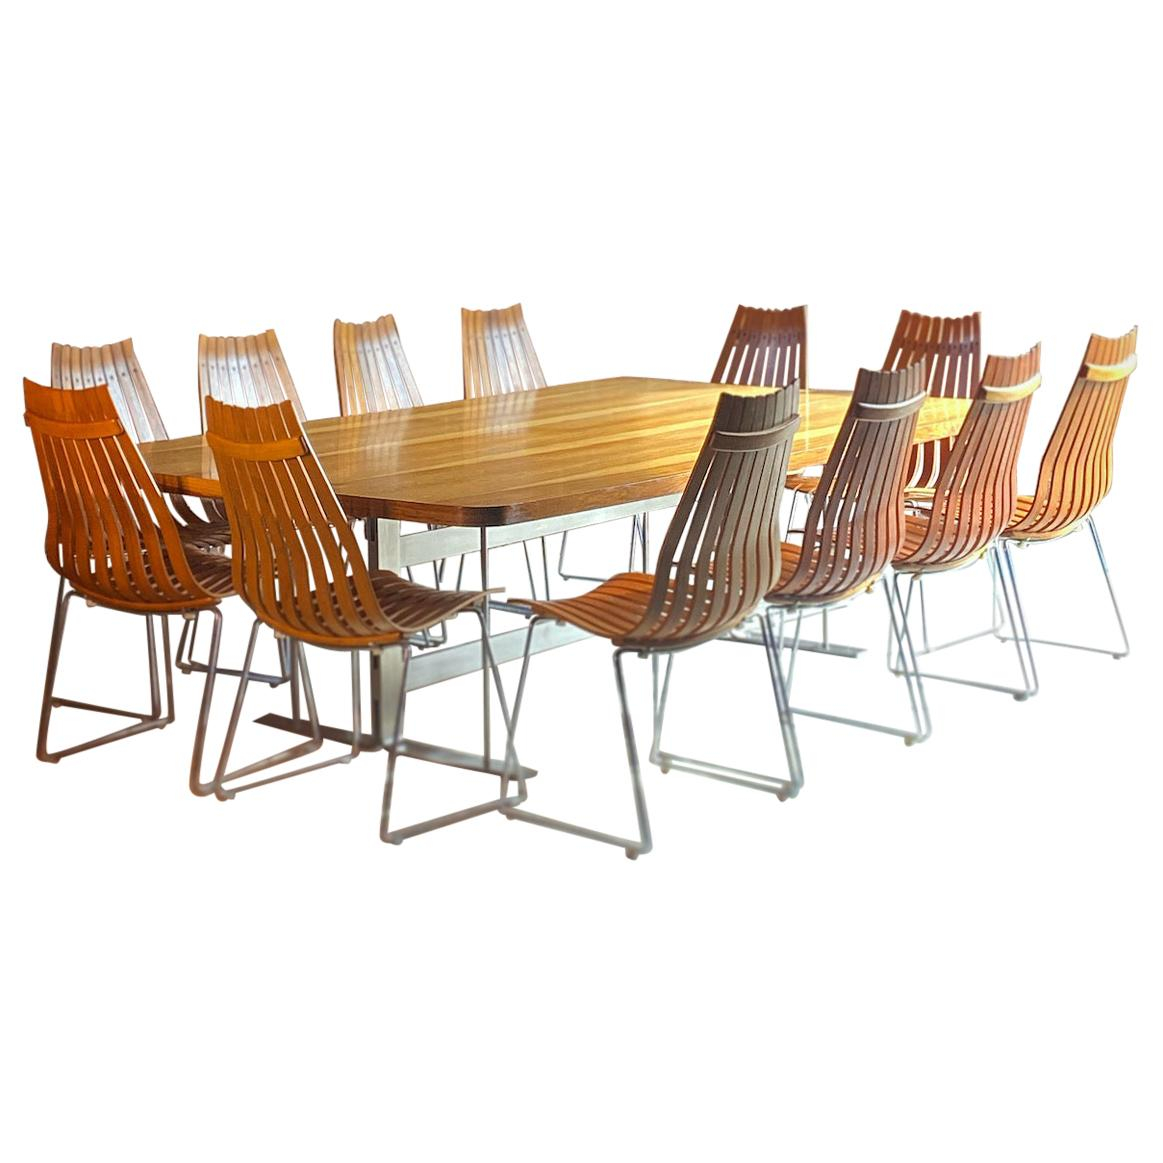 Midcentury Brazilian Rosewood Conference Dining Table and 12 Scandia Chairs